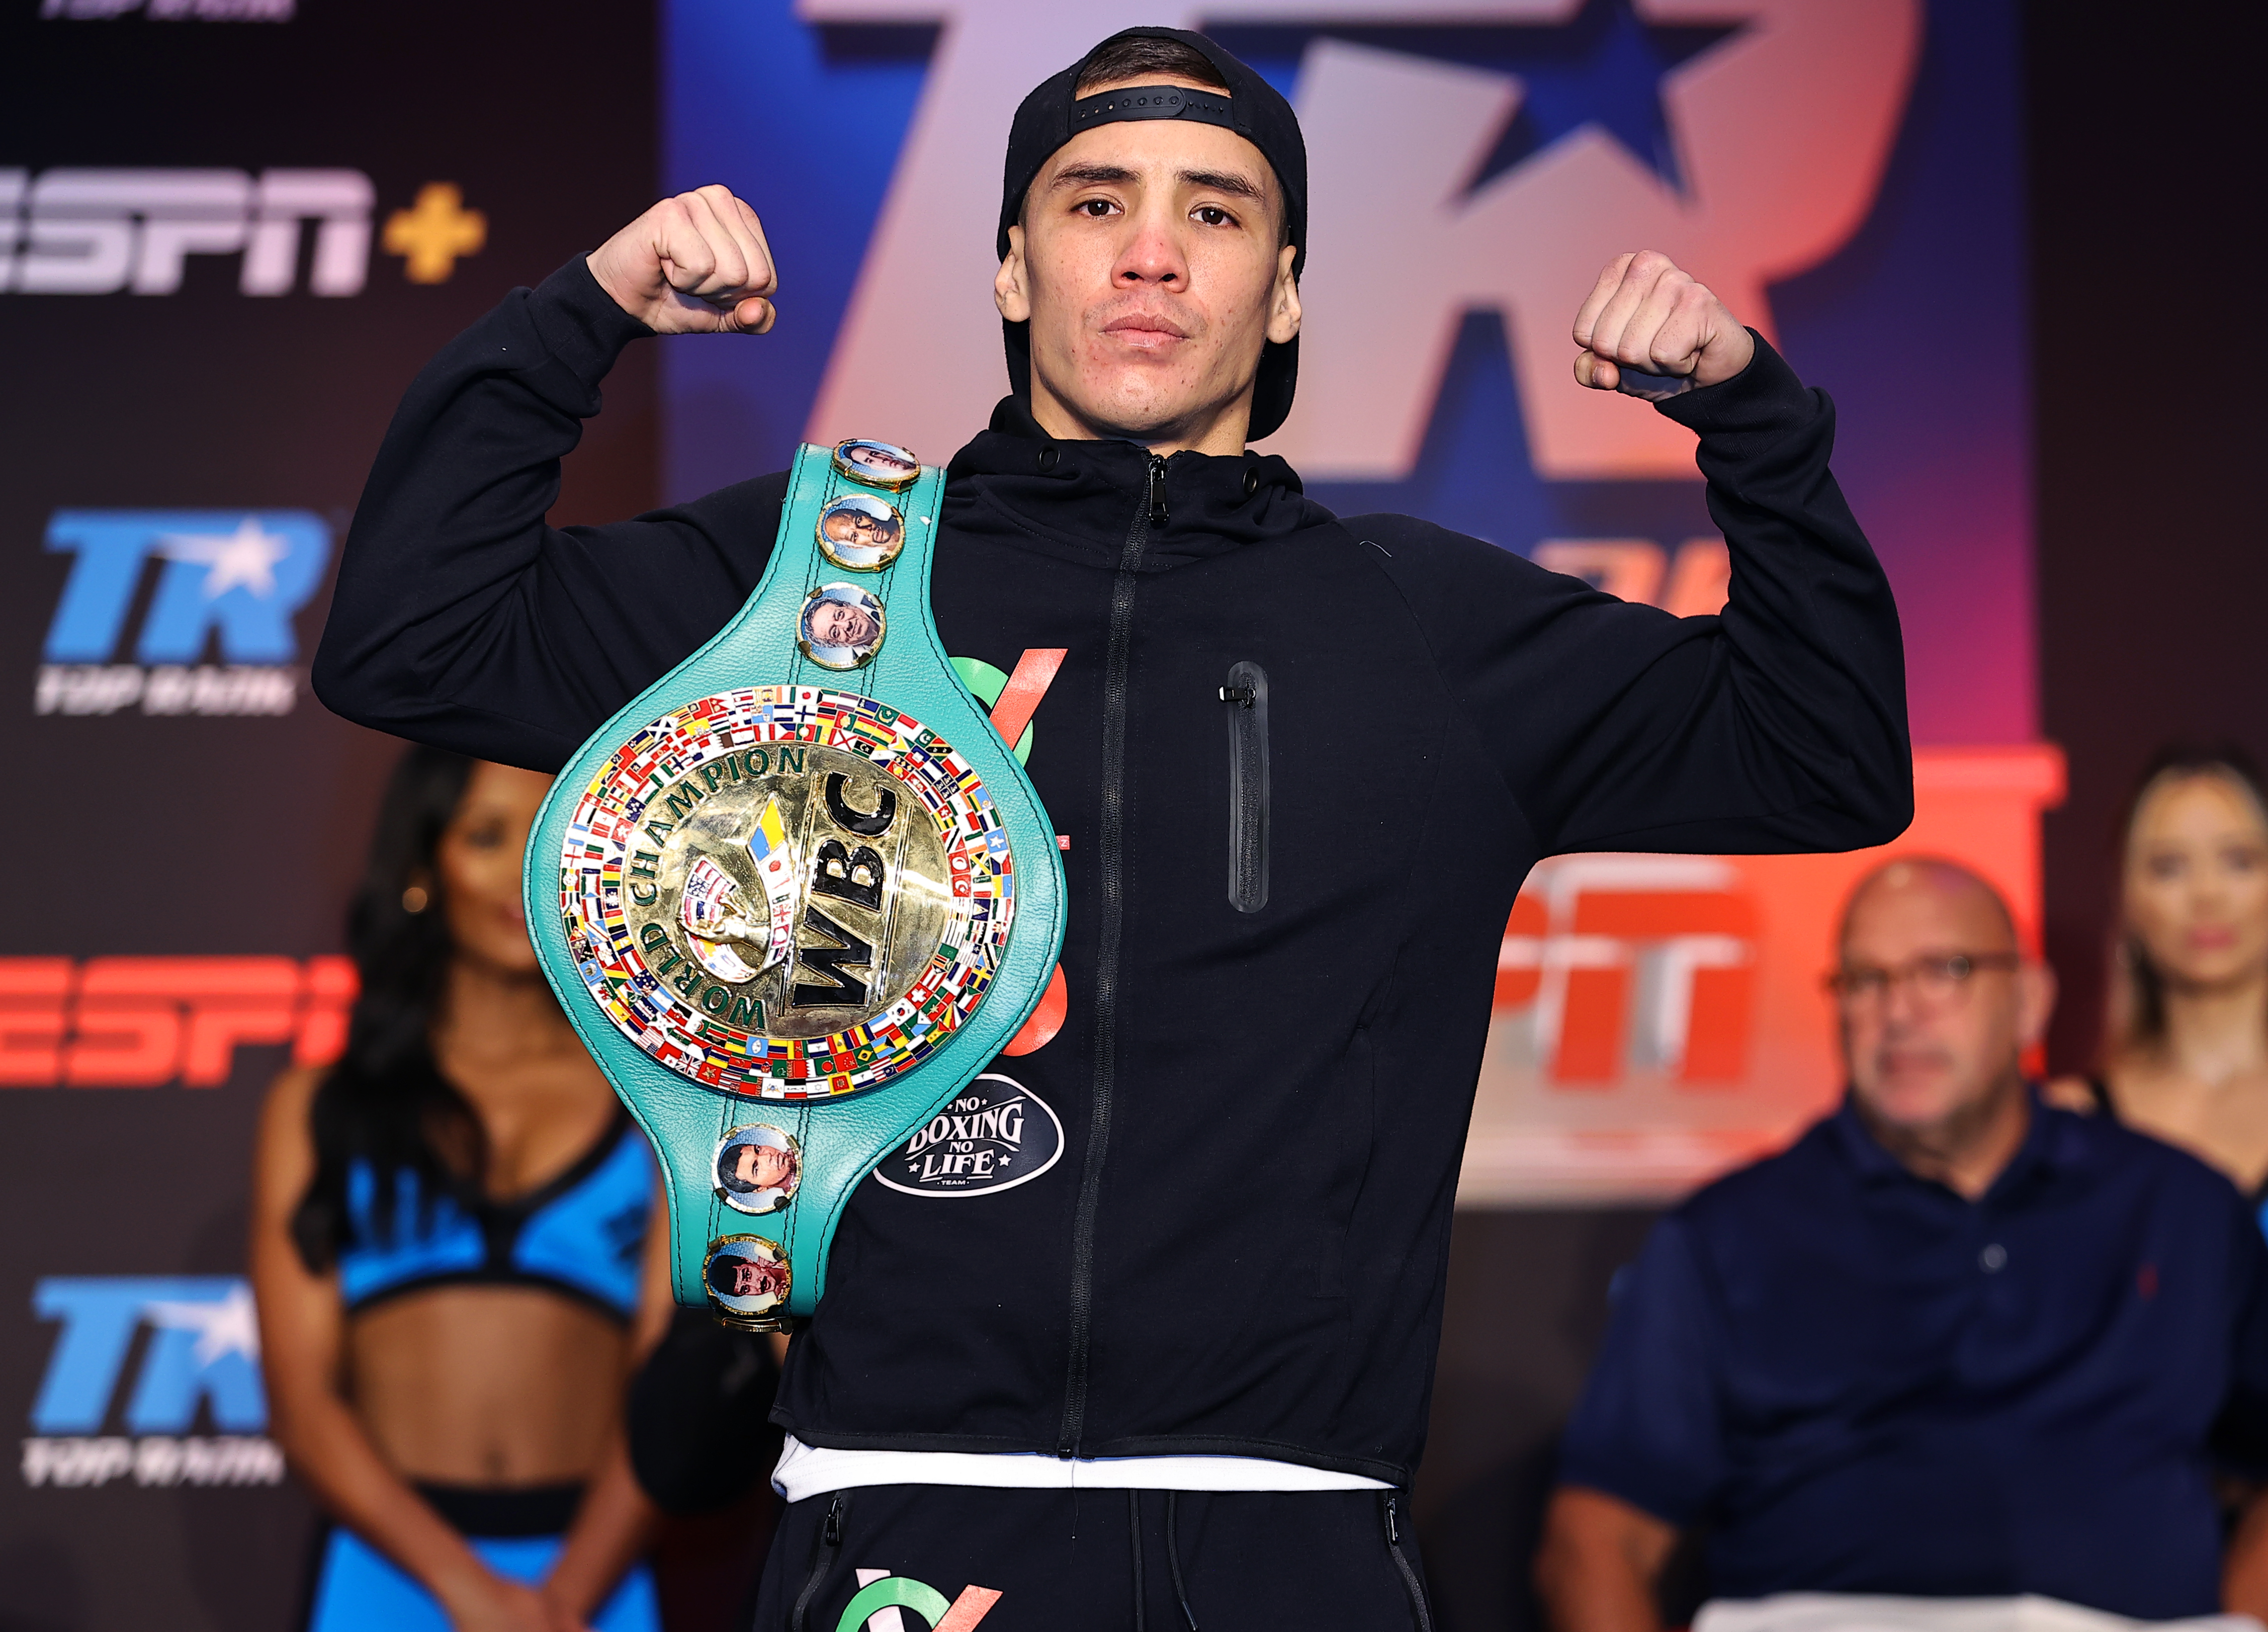 WBC super featherweight champion Oscar Valdez poses after the press conference at Casino del Sol on September 08, 2021 in Tucson, Arizona.